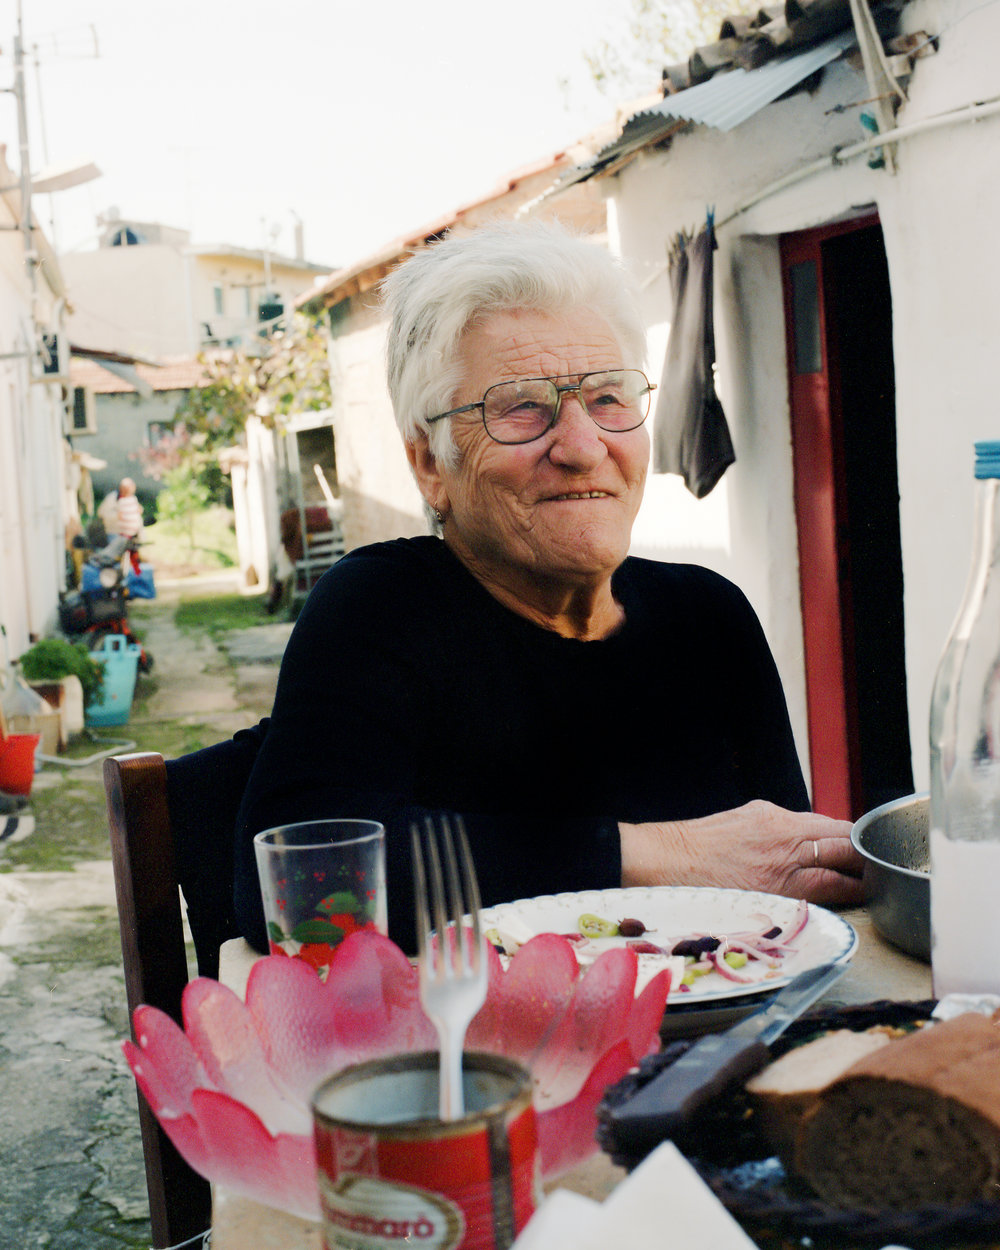 ANASTASIA   LIVES: Perivoli, Corfu, Greece  BORN: 1934, Corfu  MOTHER TONGUE: Greek  GRANDCHILDREN: Hippocrates, Ellie, Anastasia,Tasia, George, Gregori  THEY CALL HER: Yiayia  COOKING:  Marinated Sea Bream + Skordalia Dip